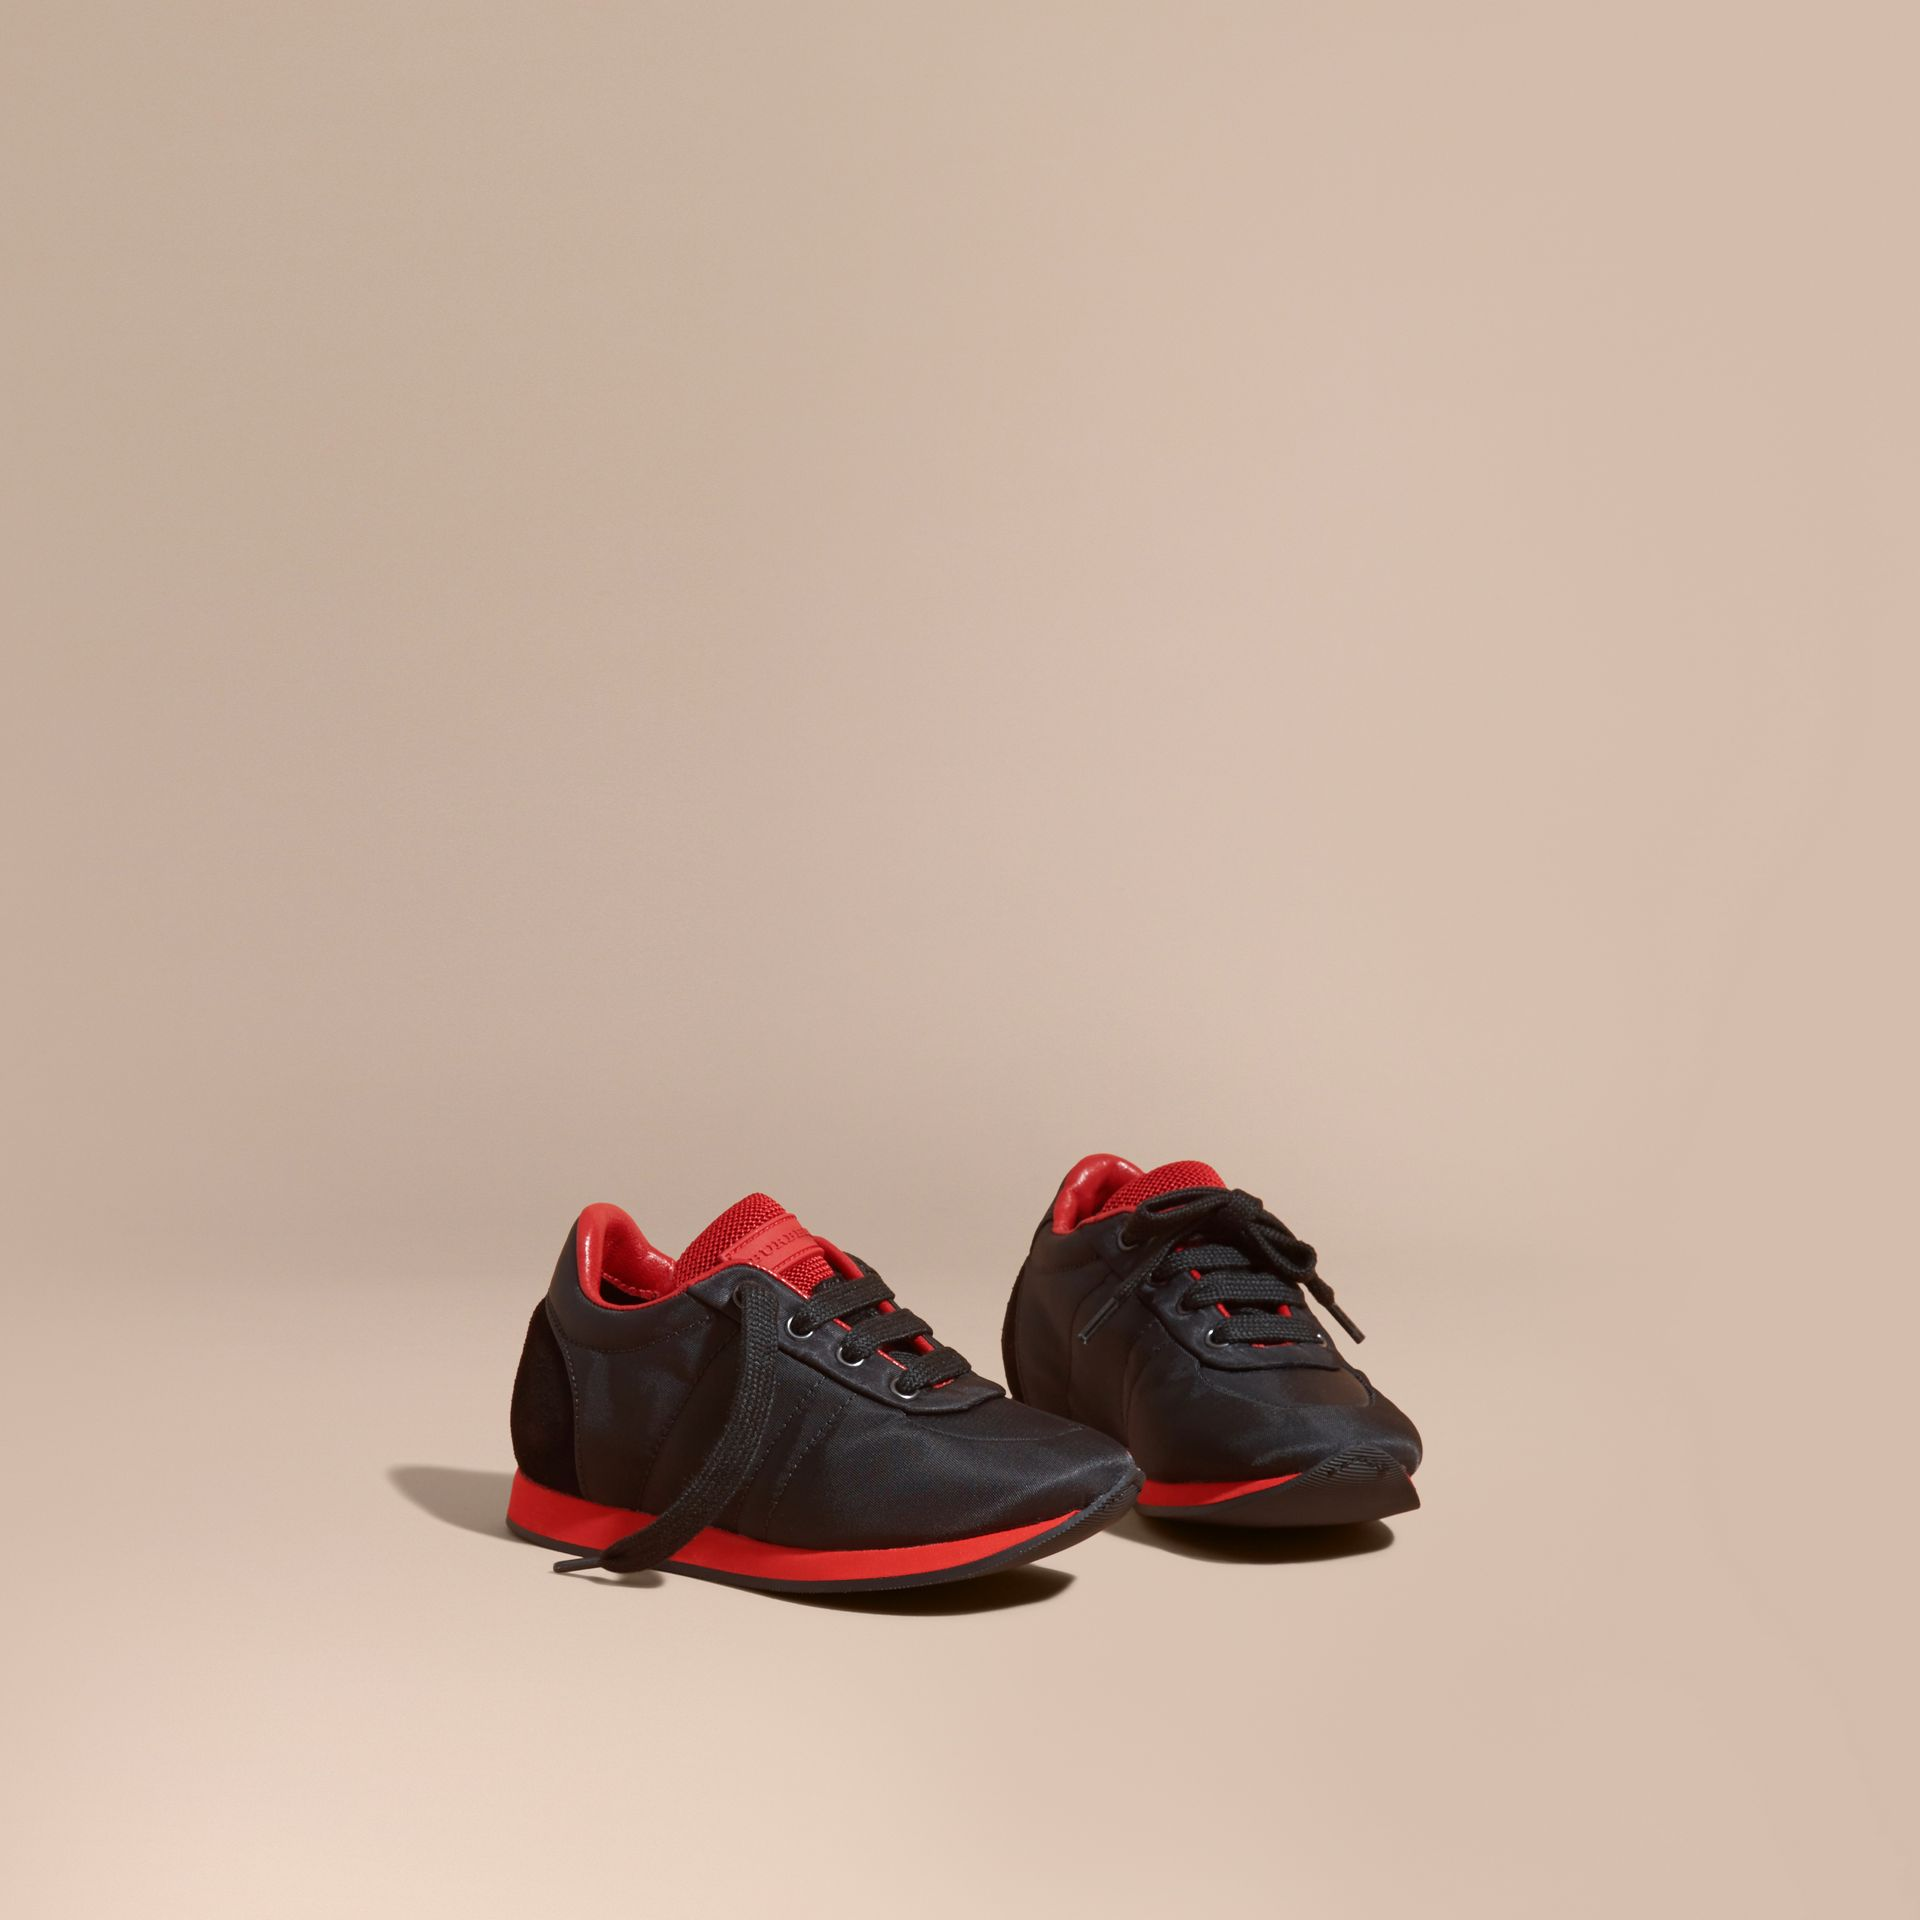 Noir/rouge militaire Sneakers en satin et cuir bicolore - photo de la galerie 1